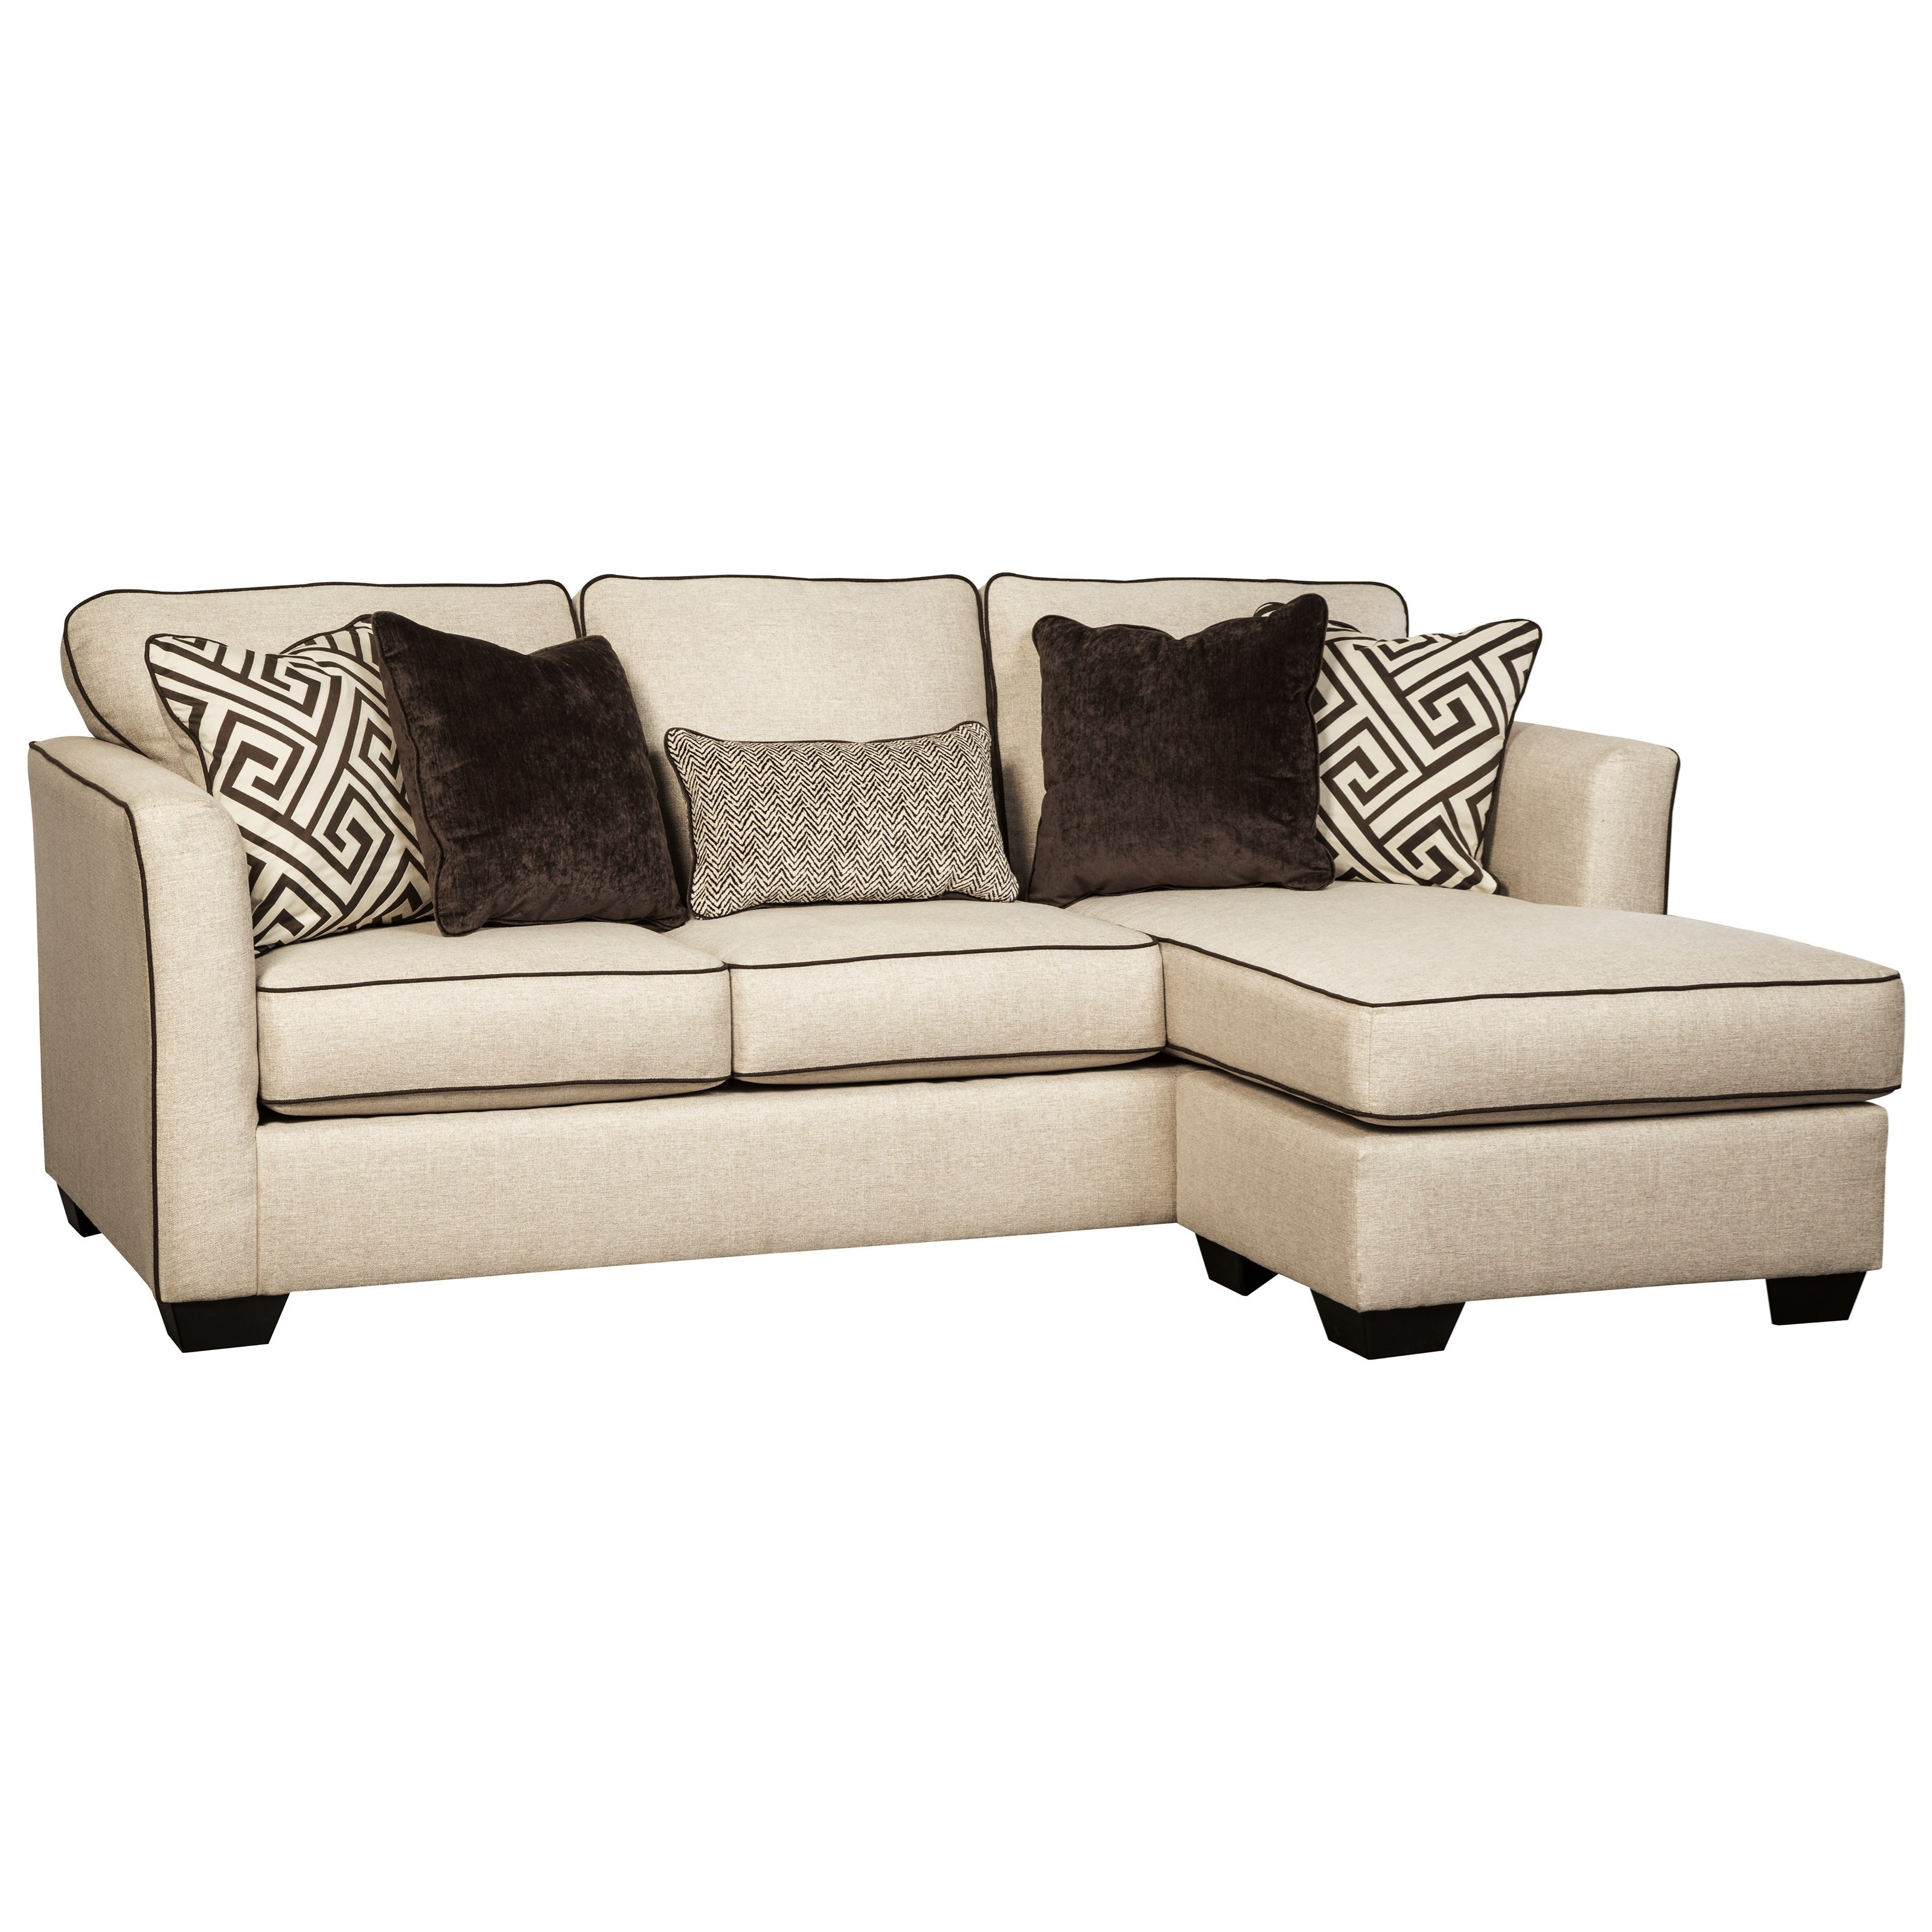 Benchcraft by ashley carlinworth contemporary queen sofa for Sofawelt outlet